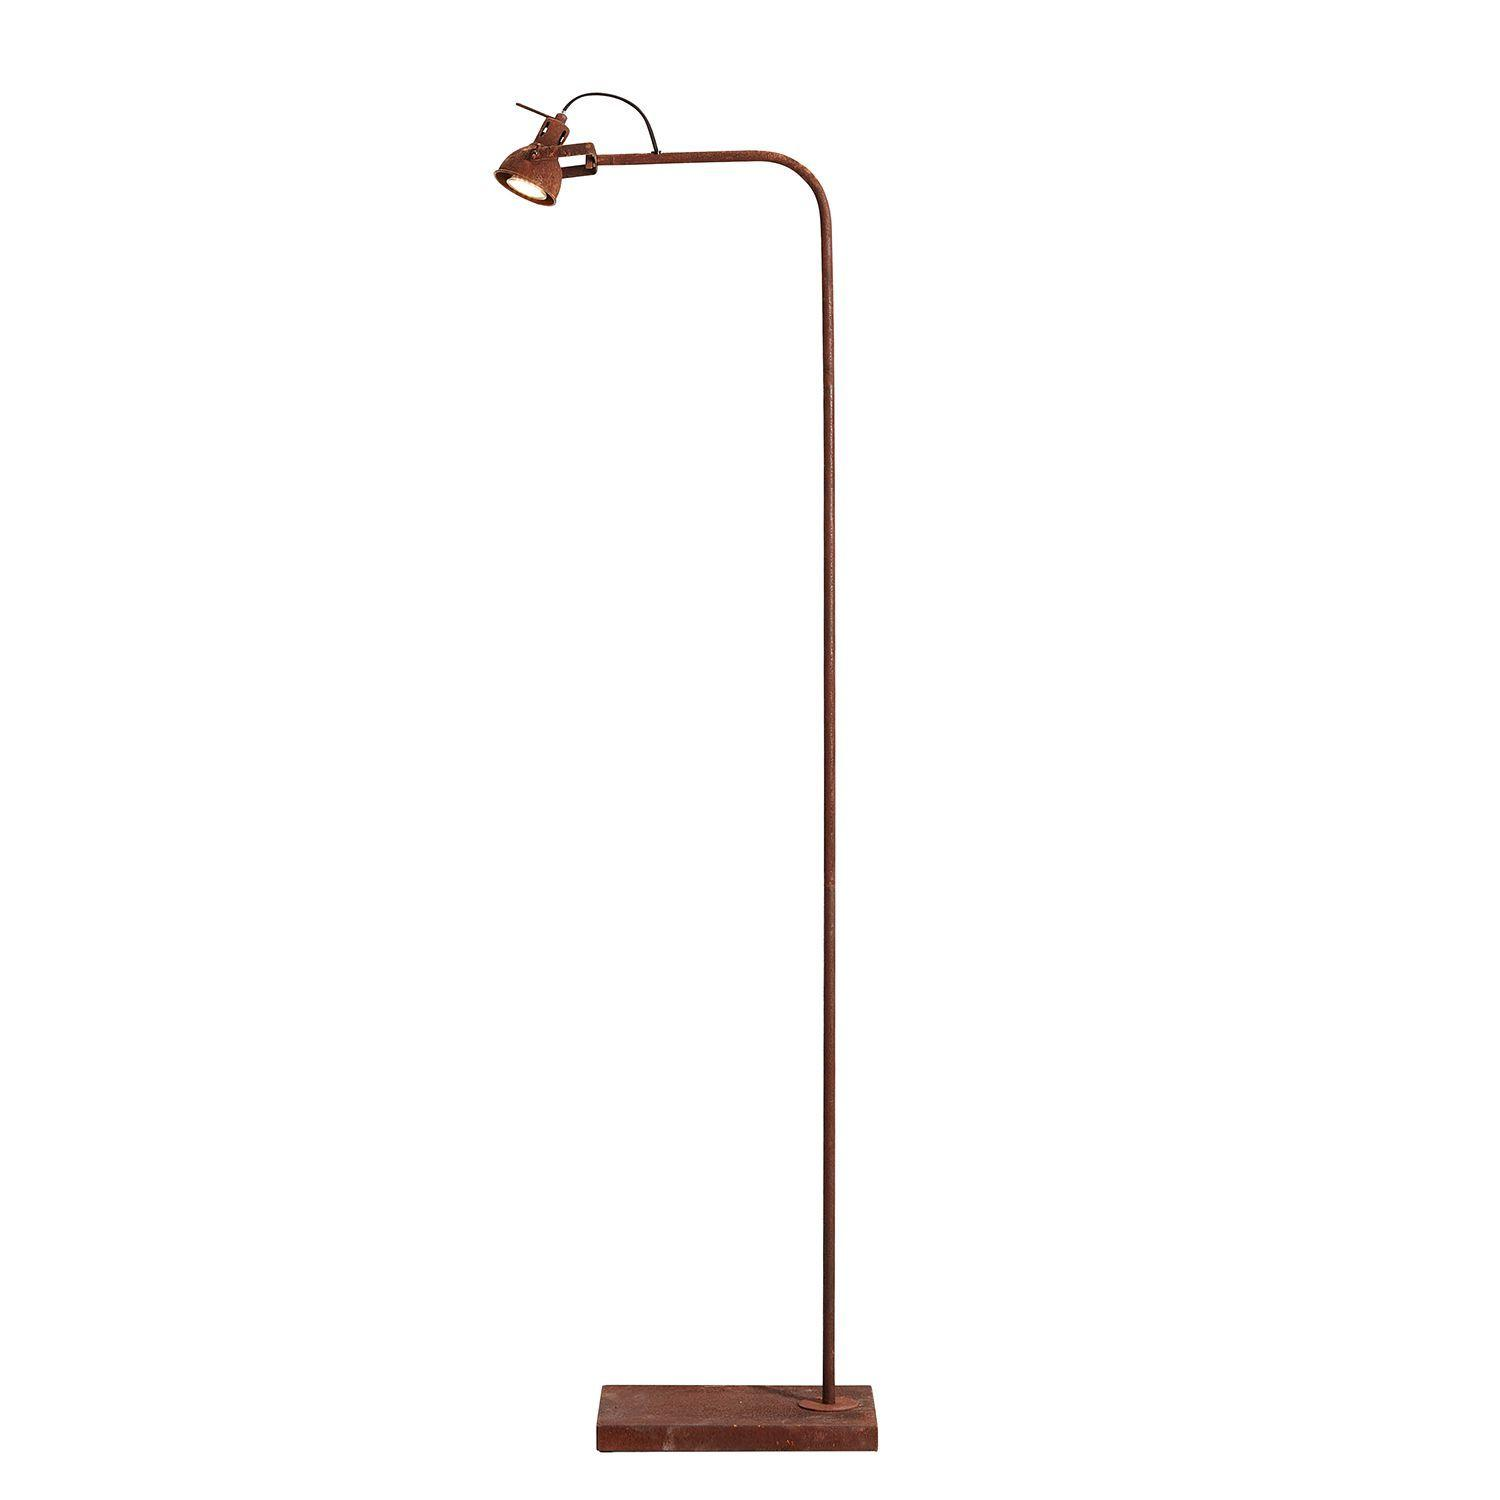 Stehlampe Holz Home24